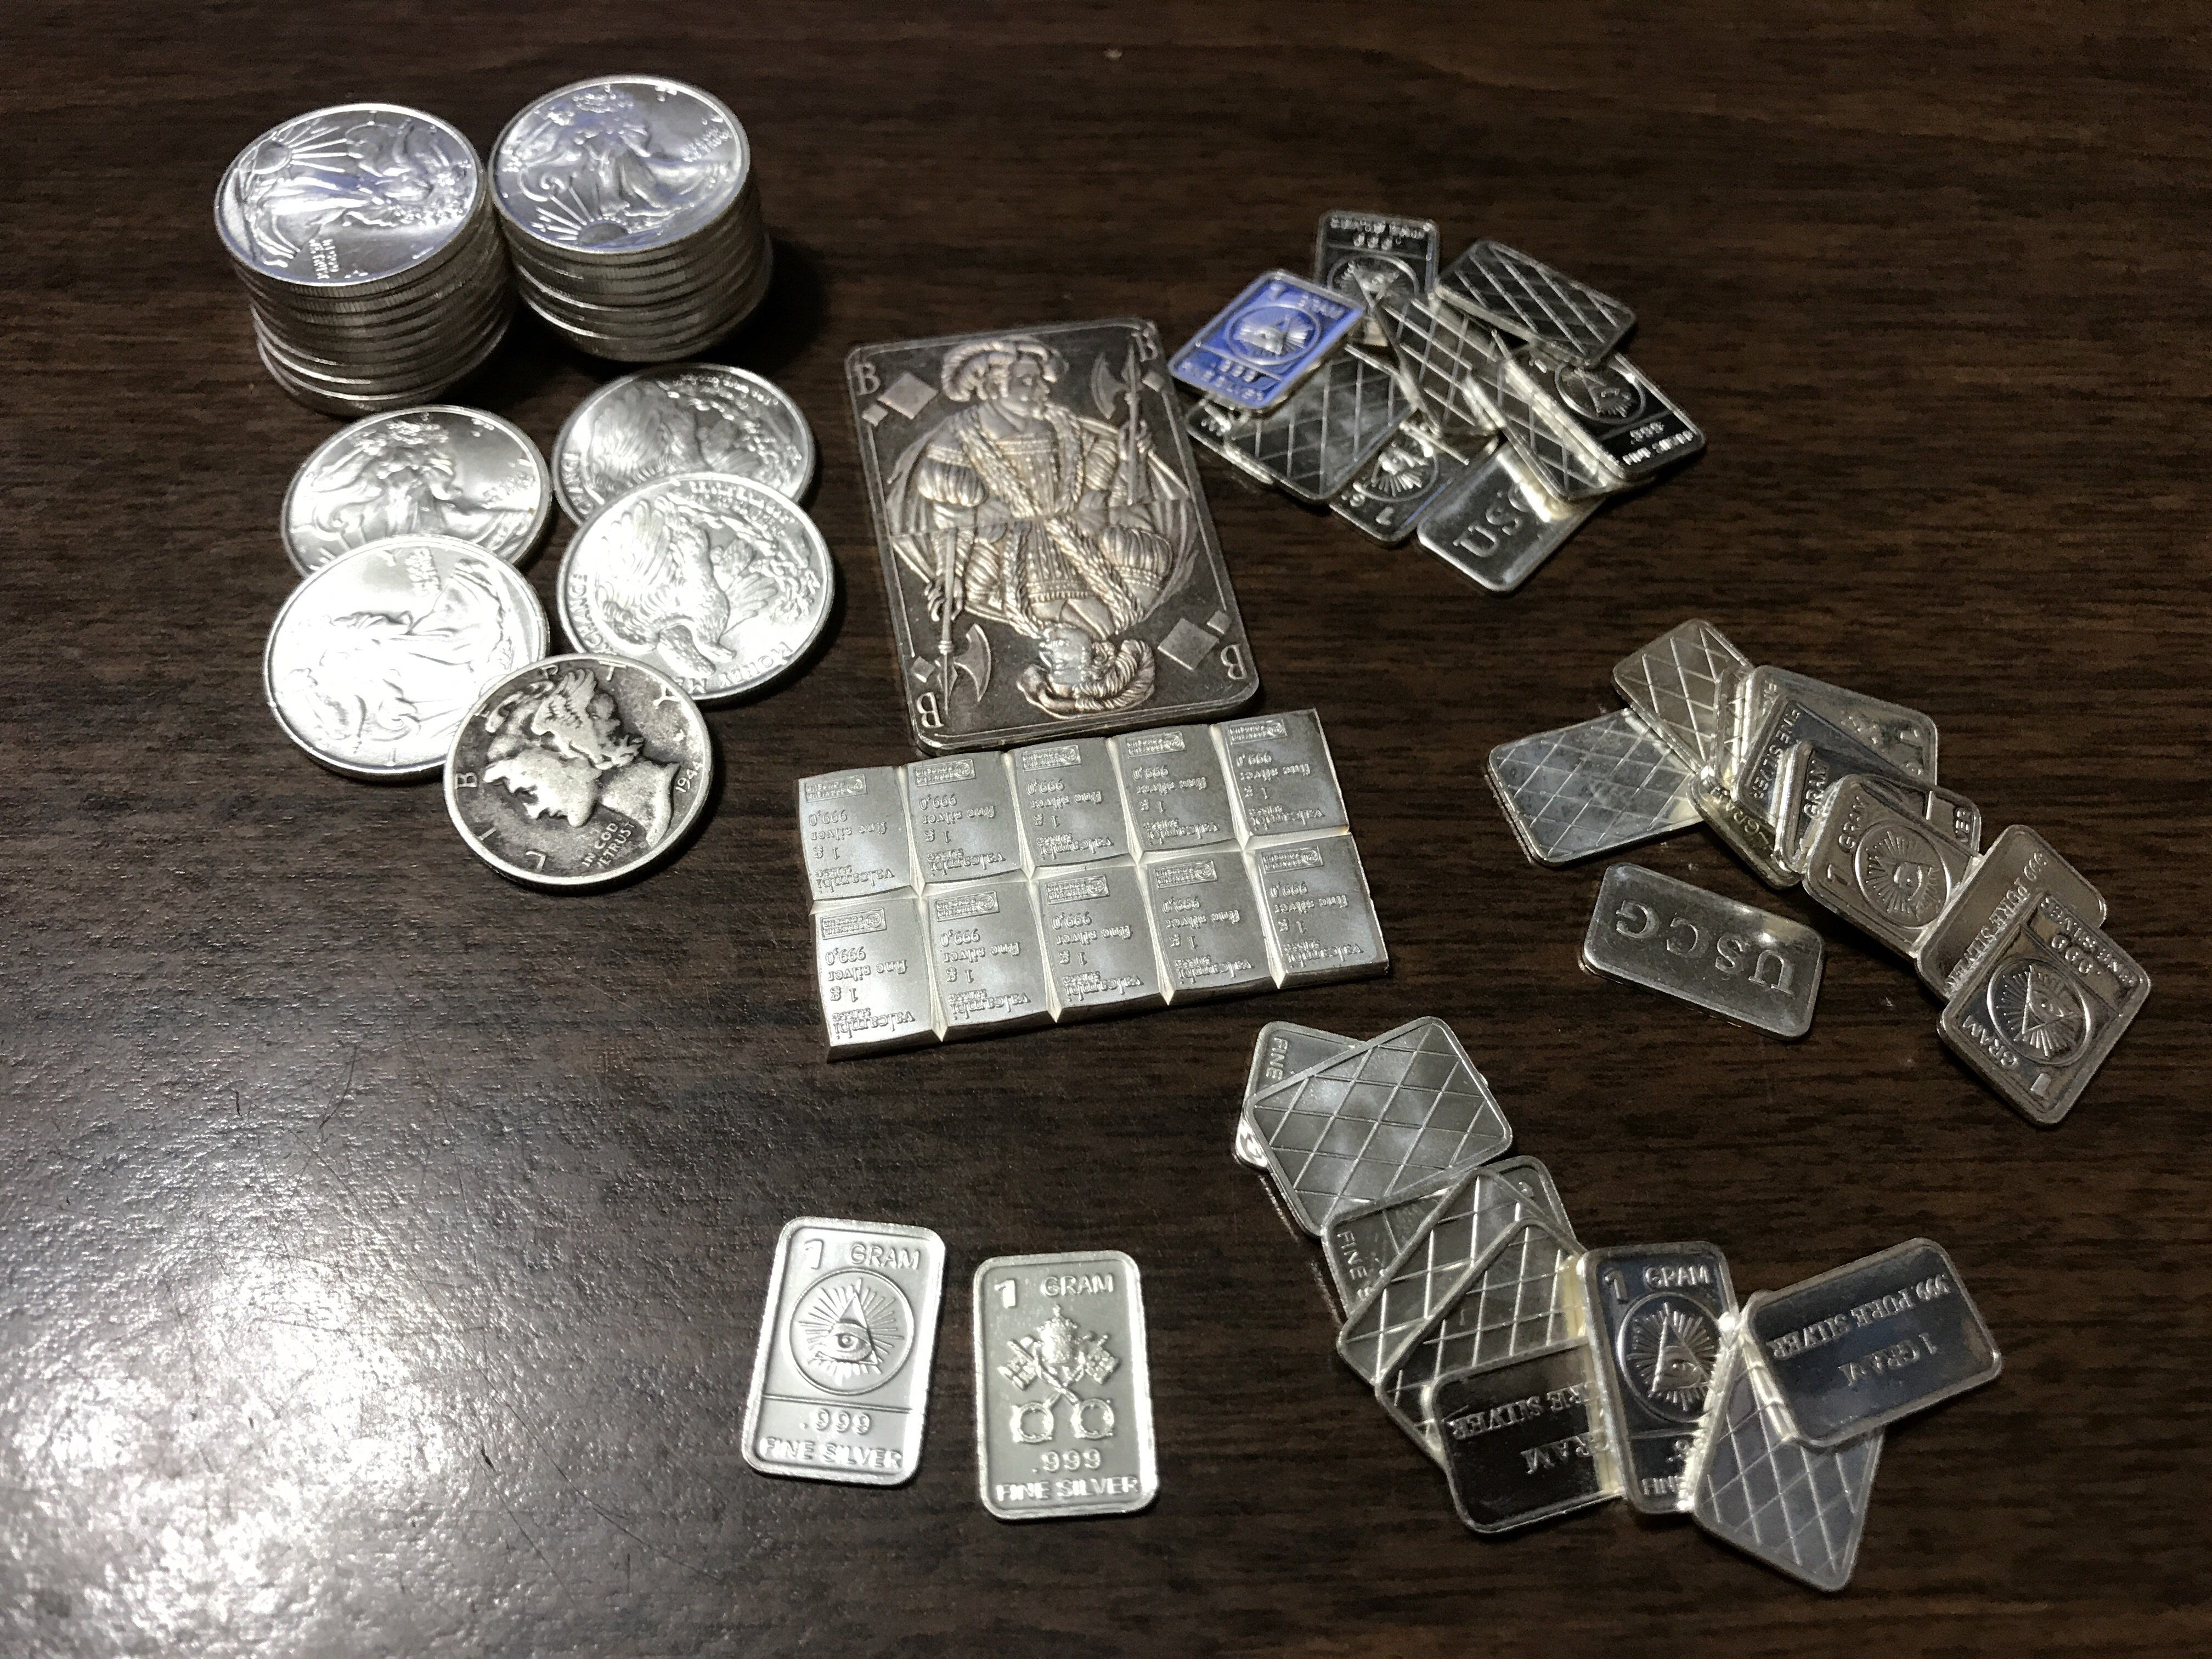 Silver investments coins or bars perlus investment management llpp